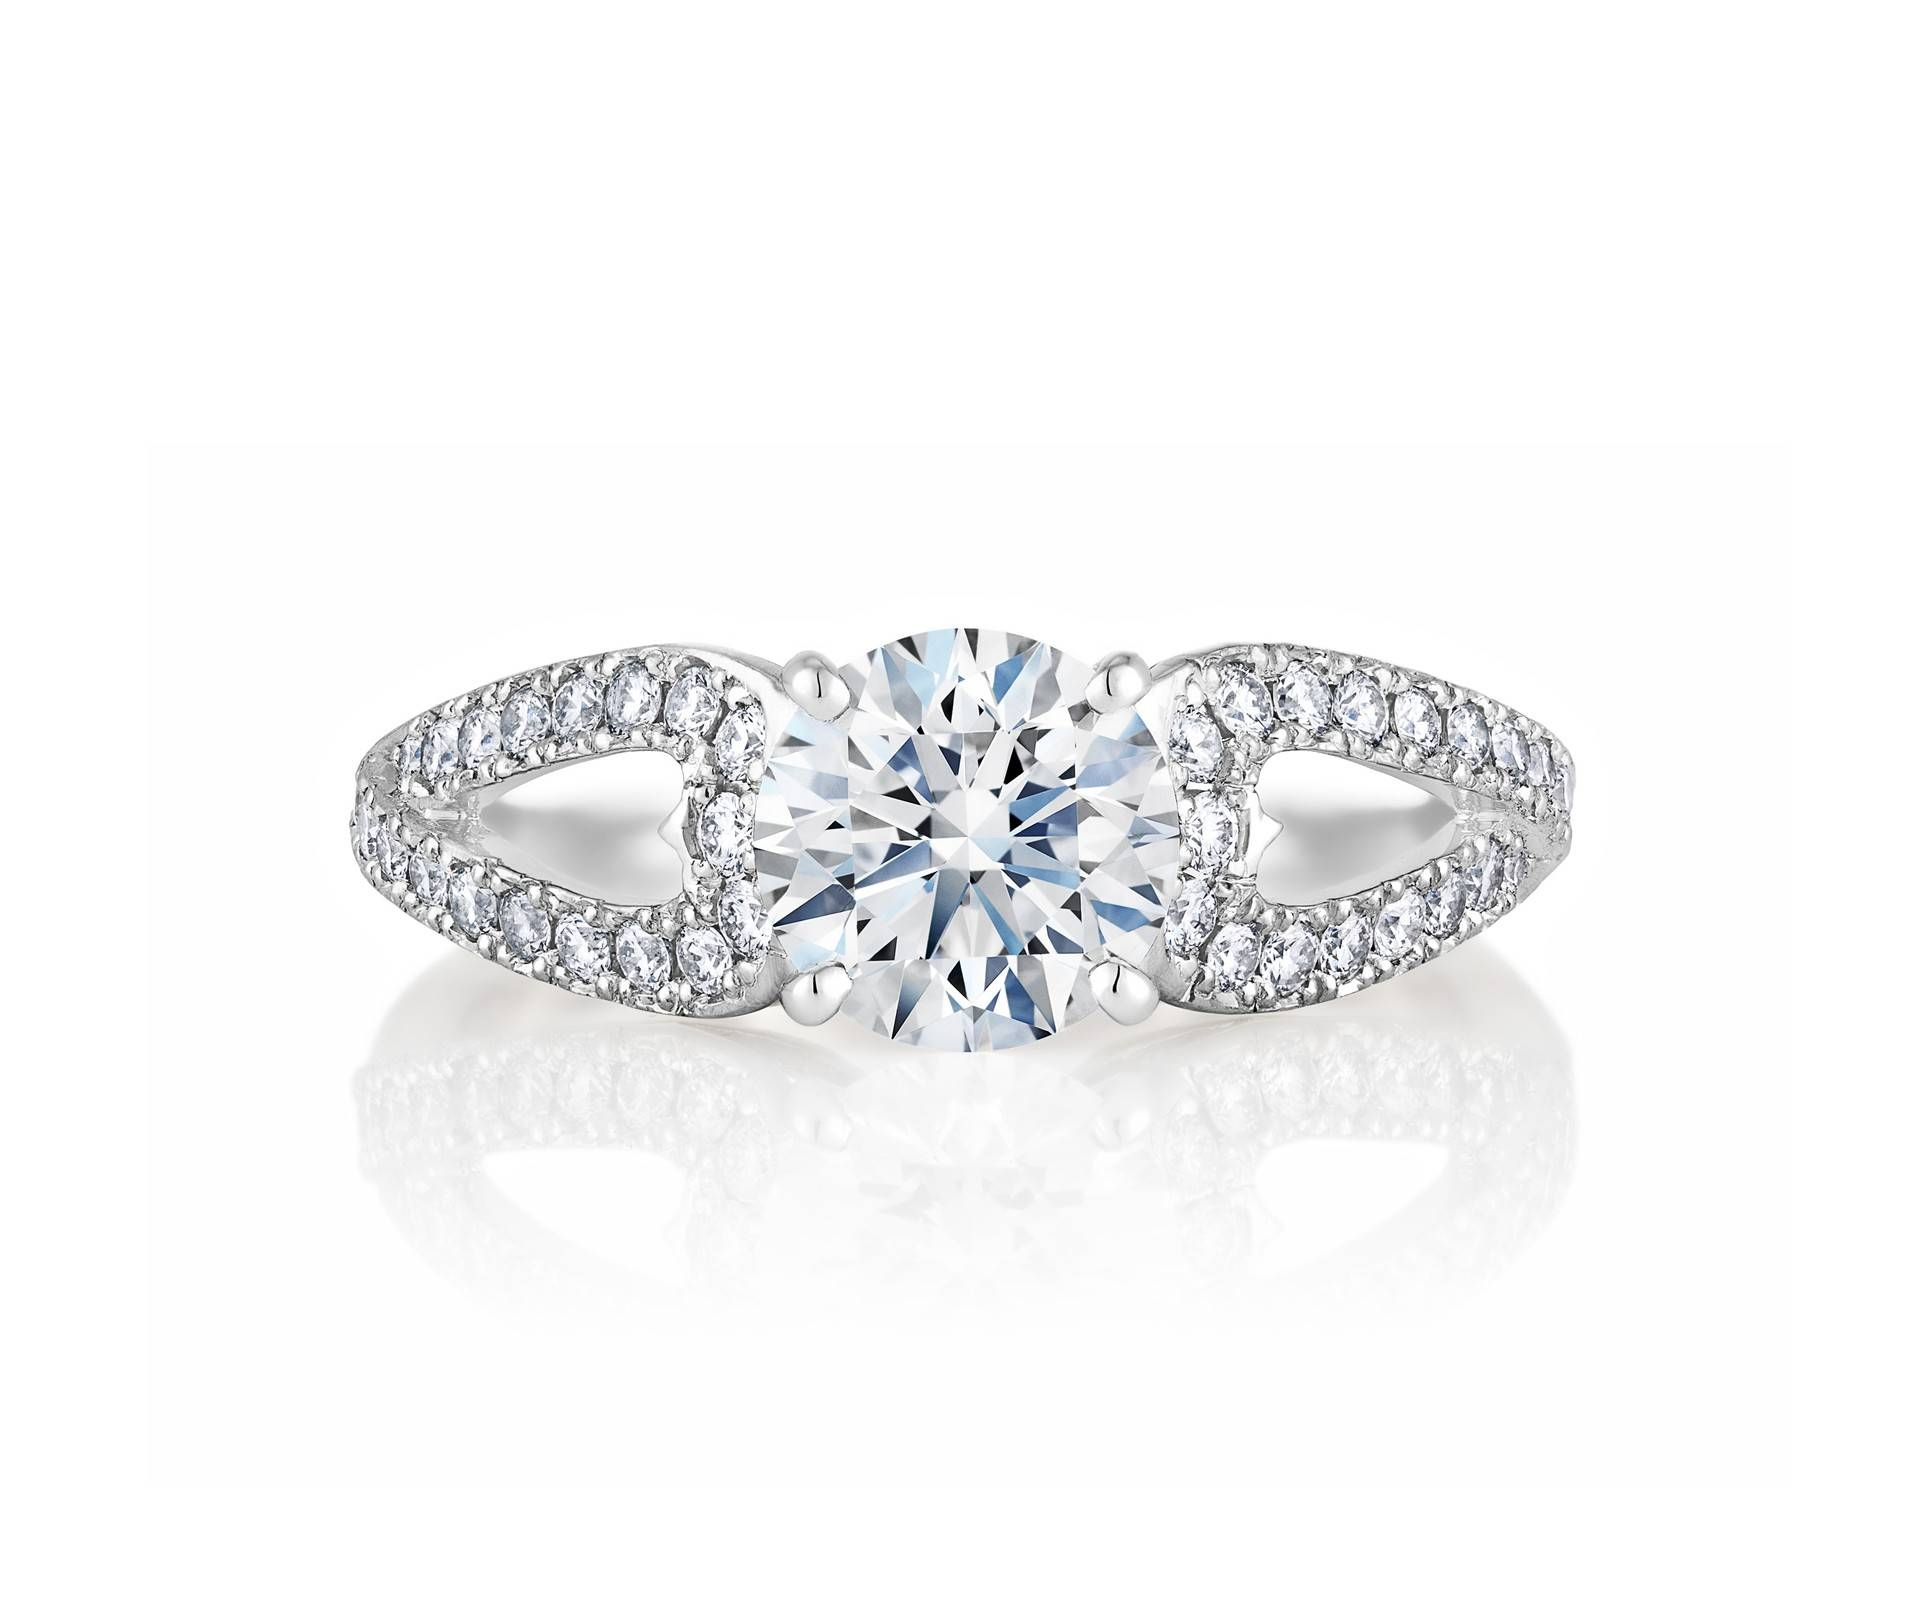 Diamond Engagement Rings & Promise Rings | De Beers For Diamonds Engagement Rings (View 9 of 15)